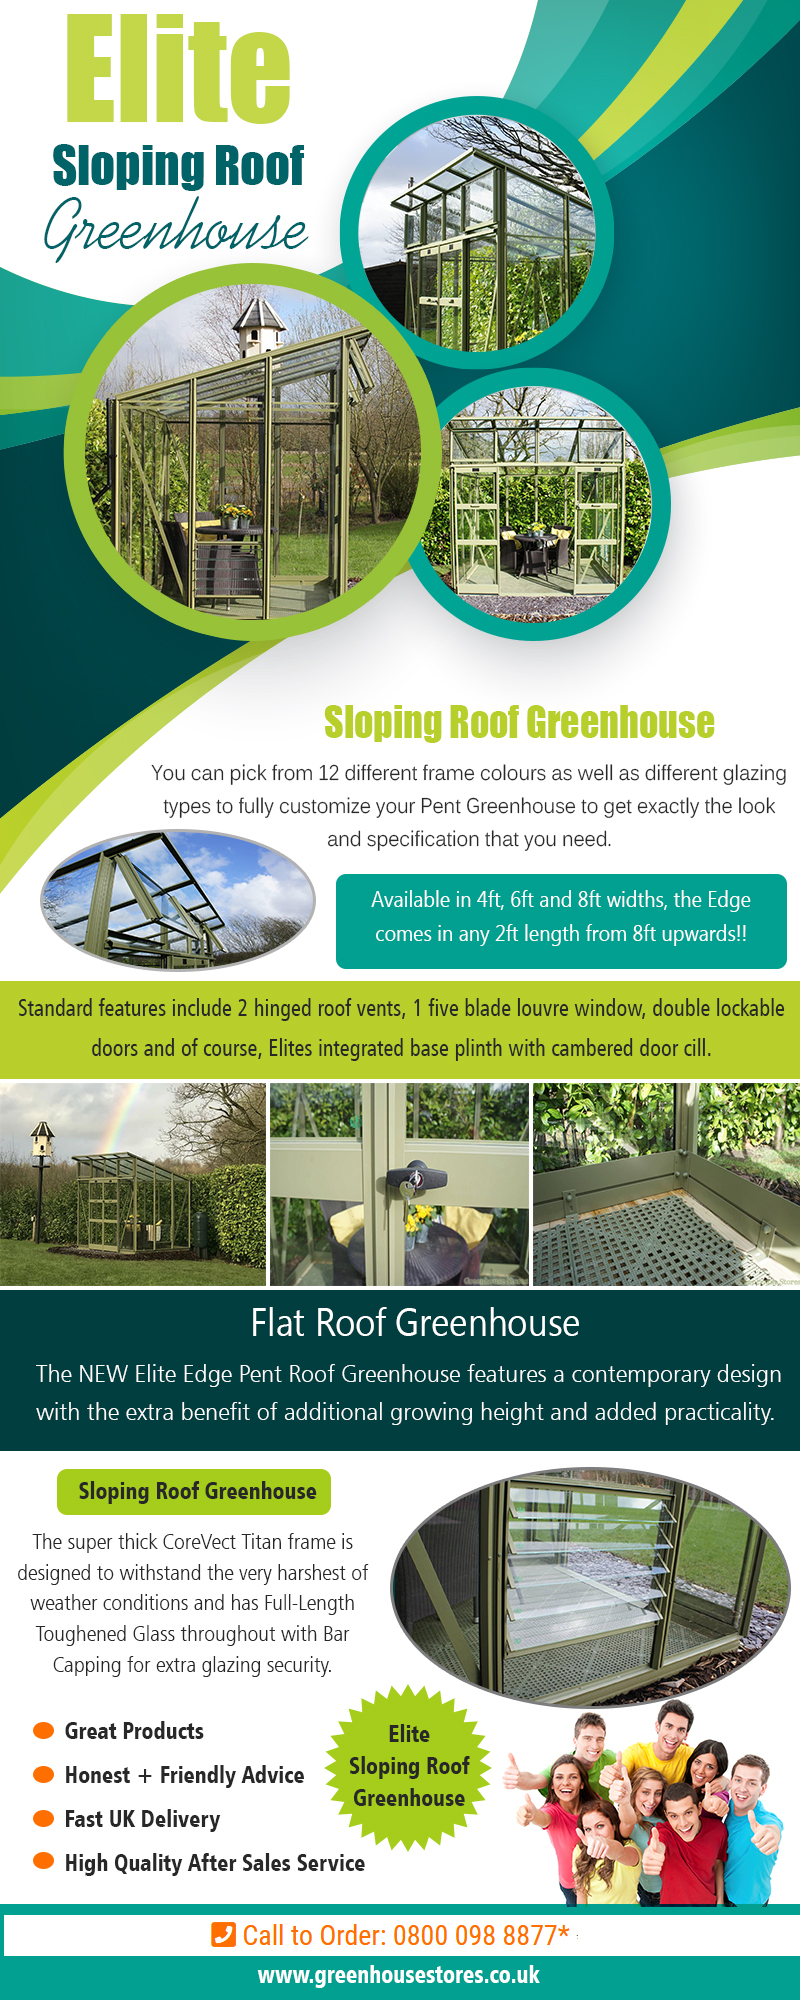 Elite Sloping Roof Greenhouse